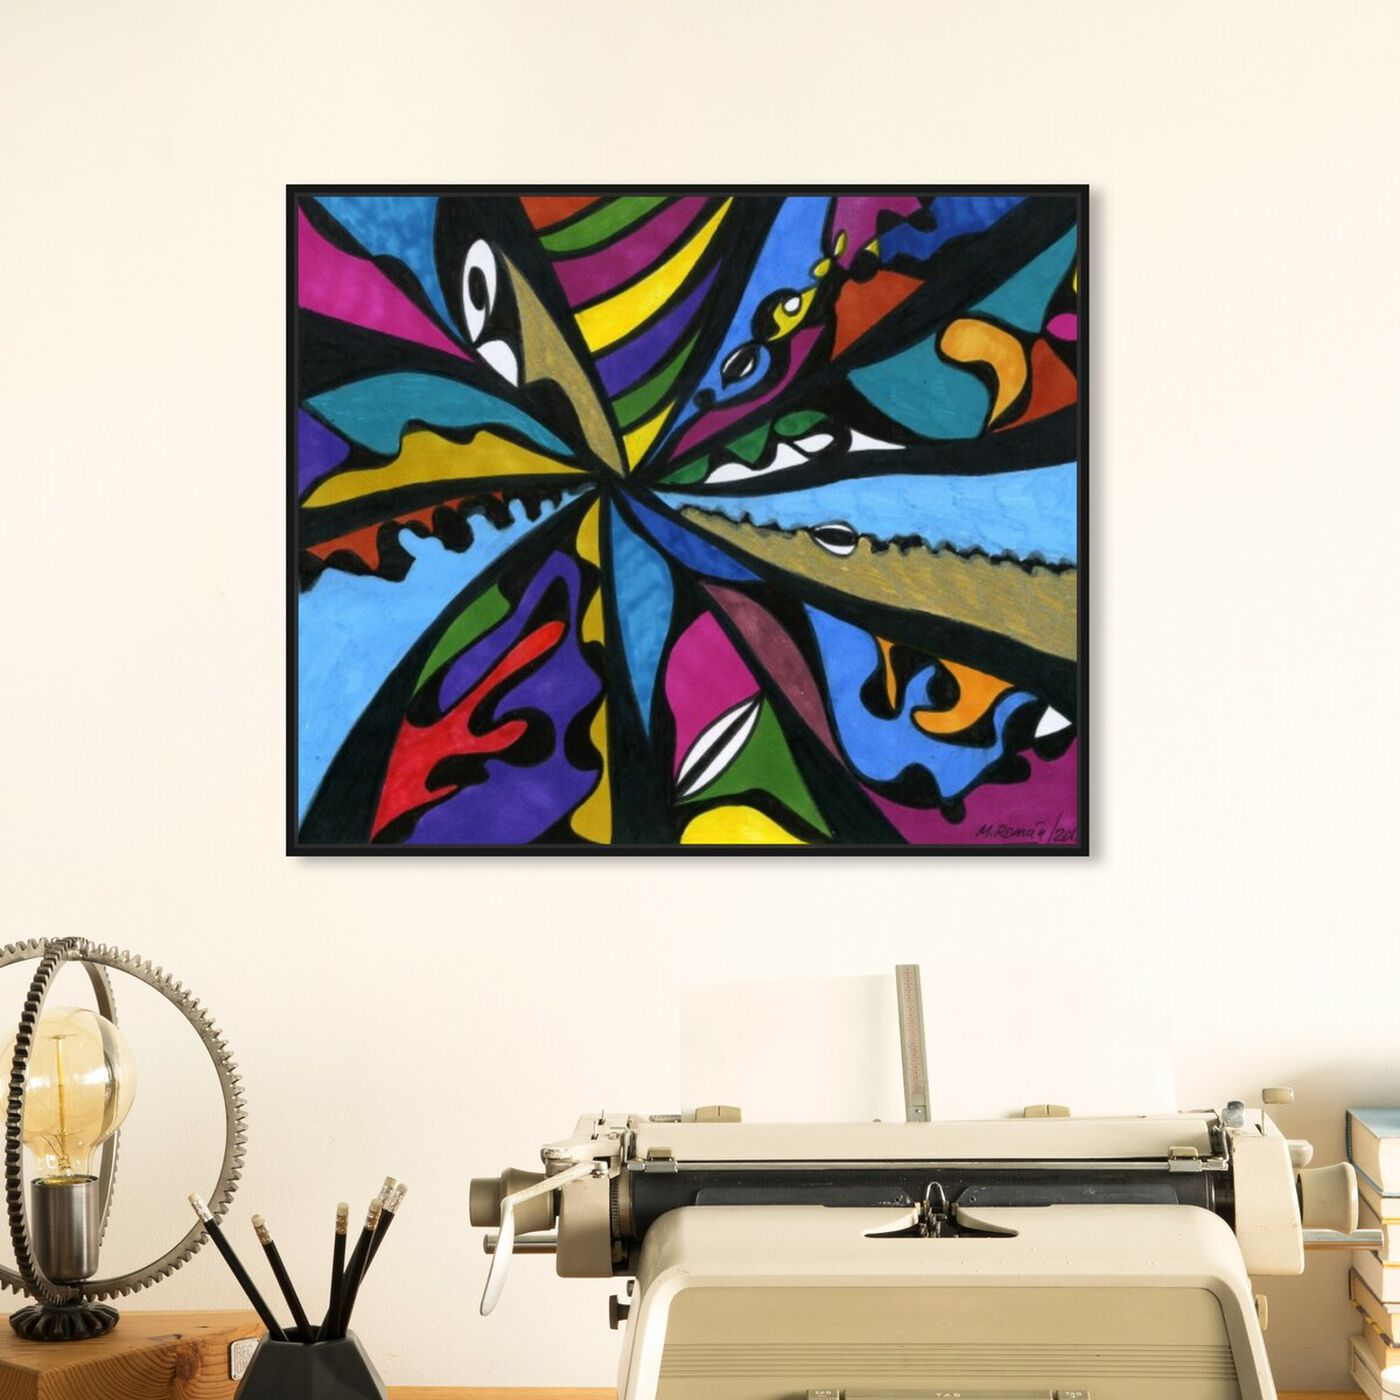 Hanging view of Requiem featuring abstract and geometric art.